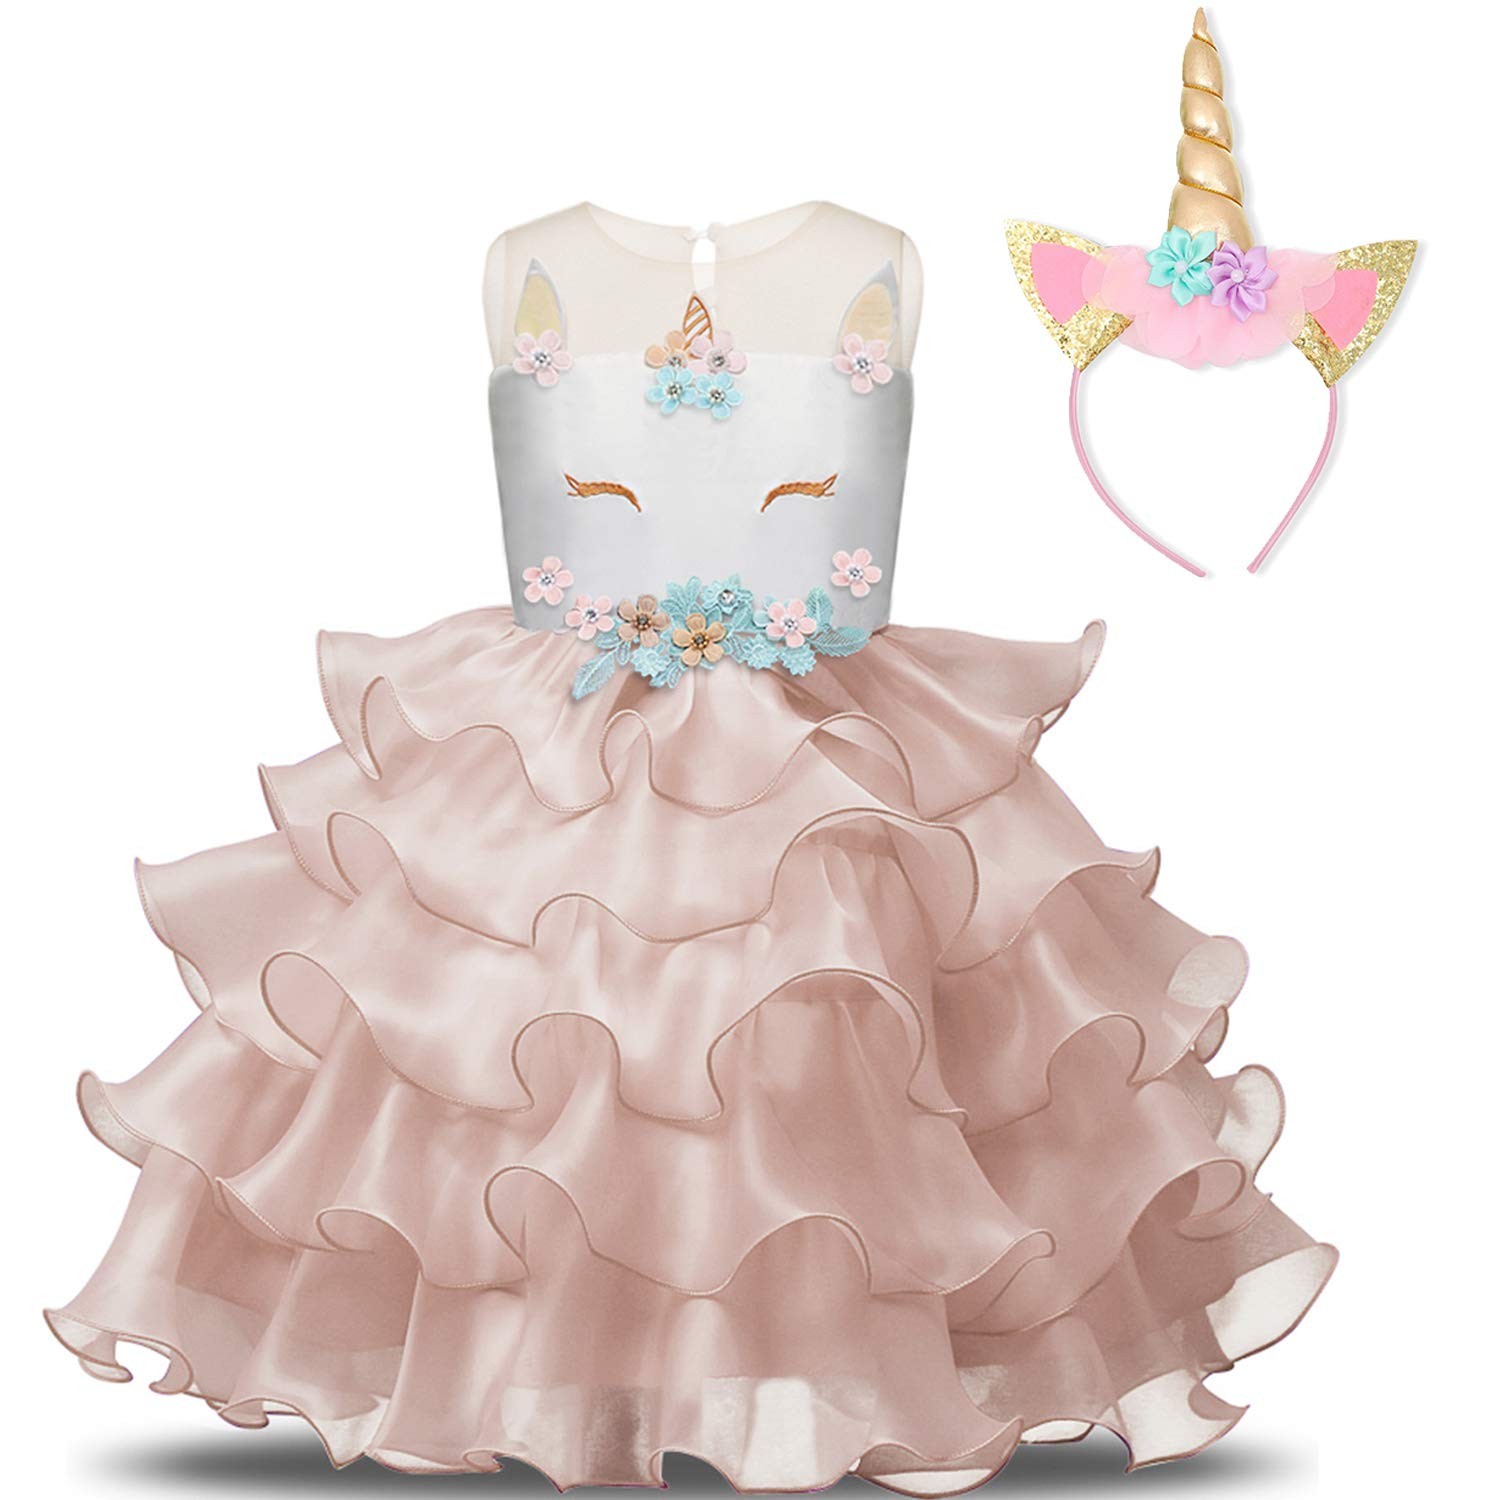 NNJXD Girl Unicorn Flower Ruffles Cosplay Costume Pageant Party Princess Dress